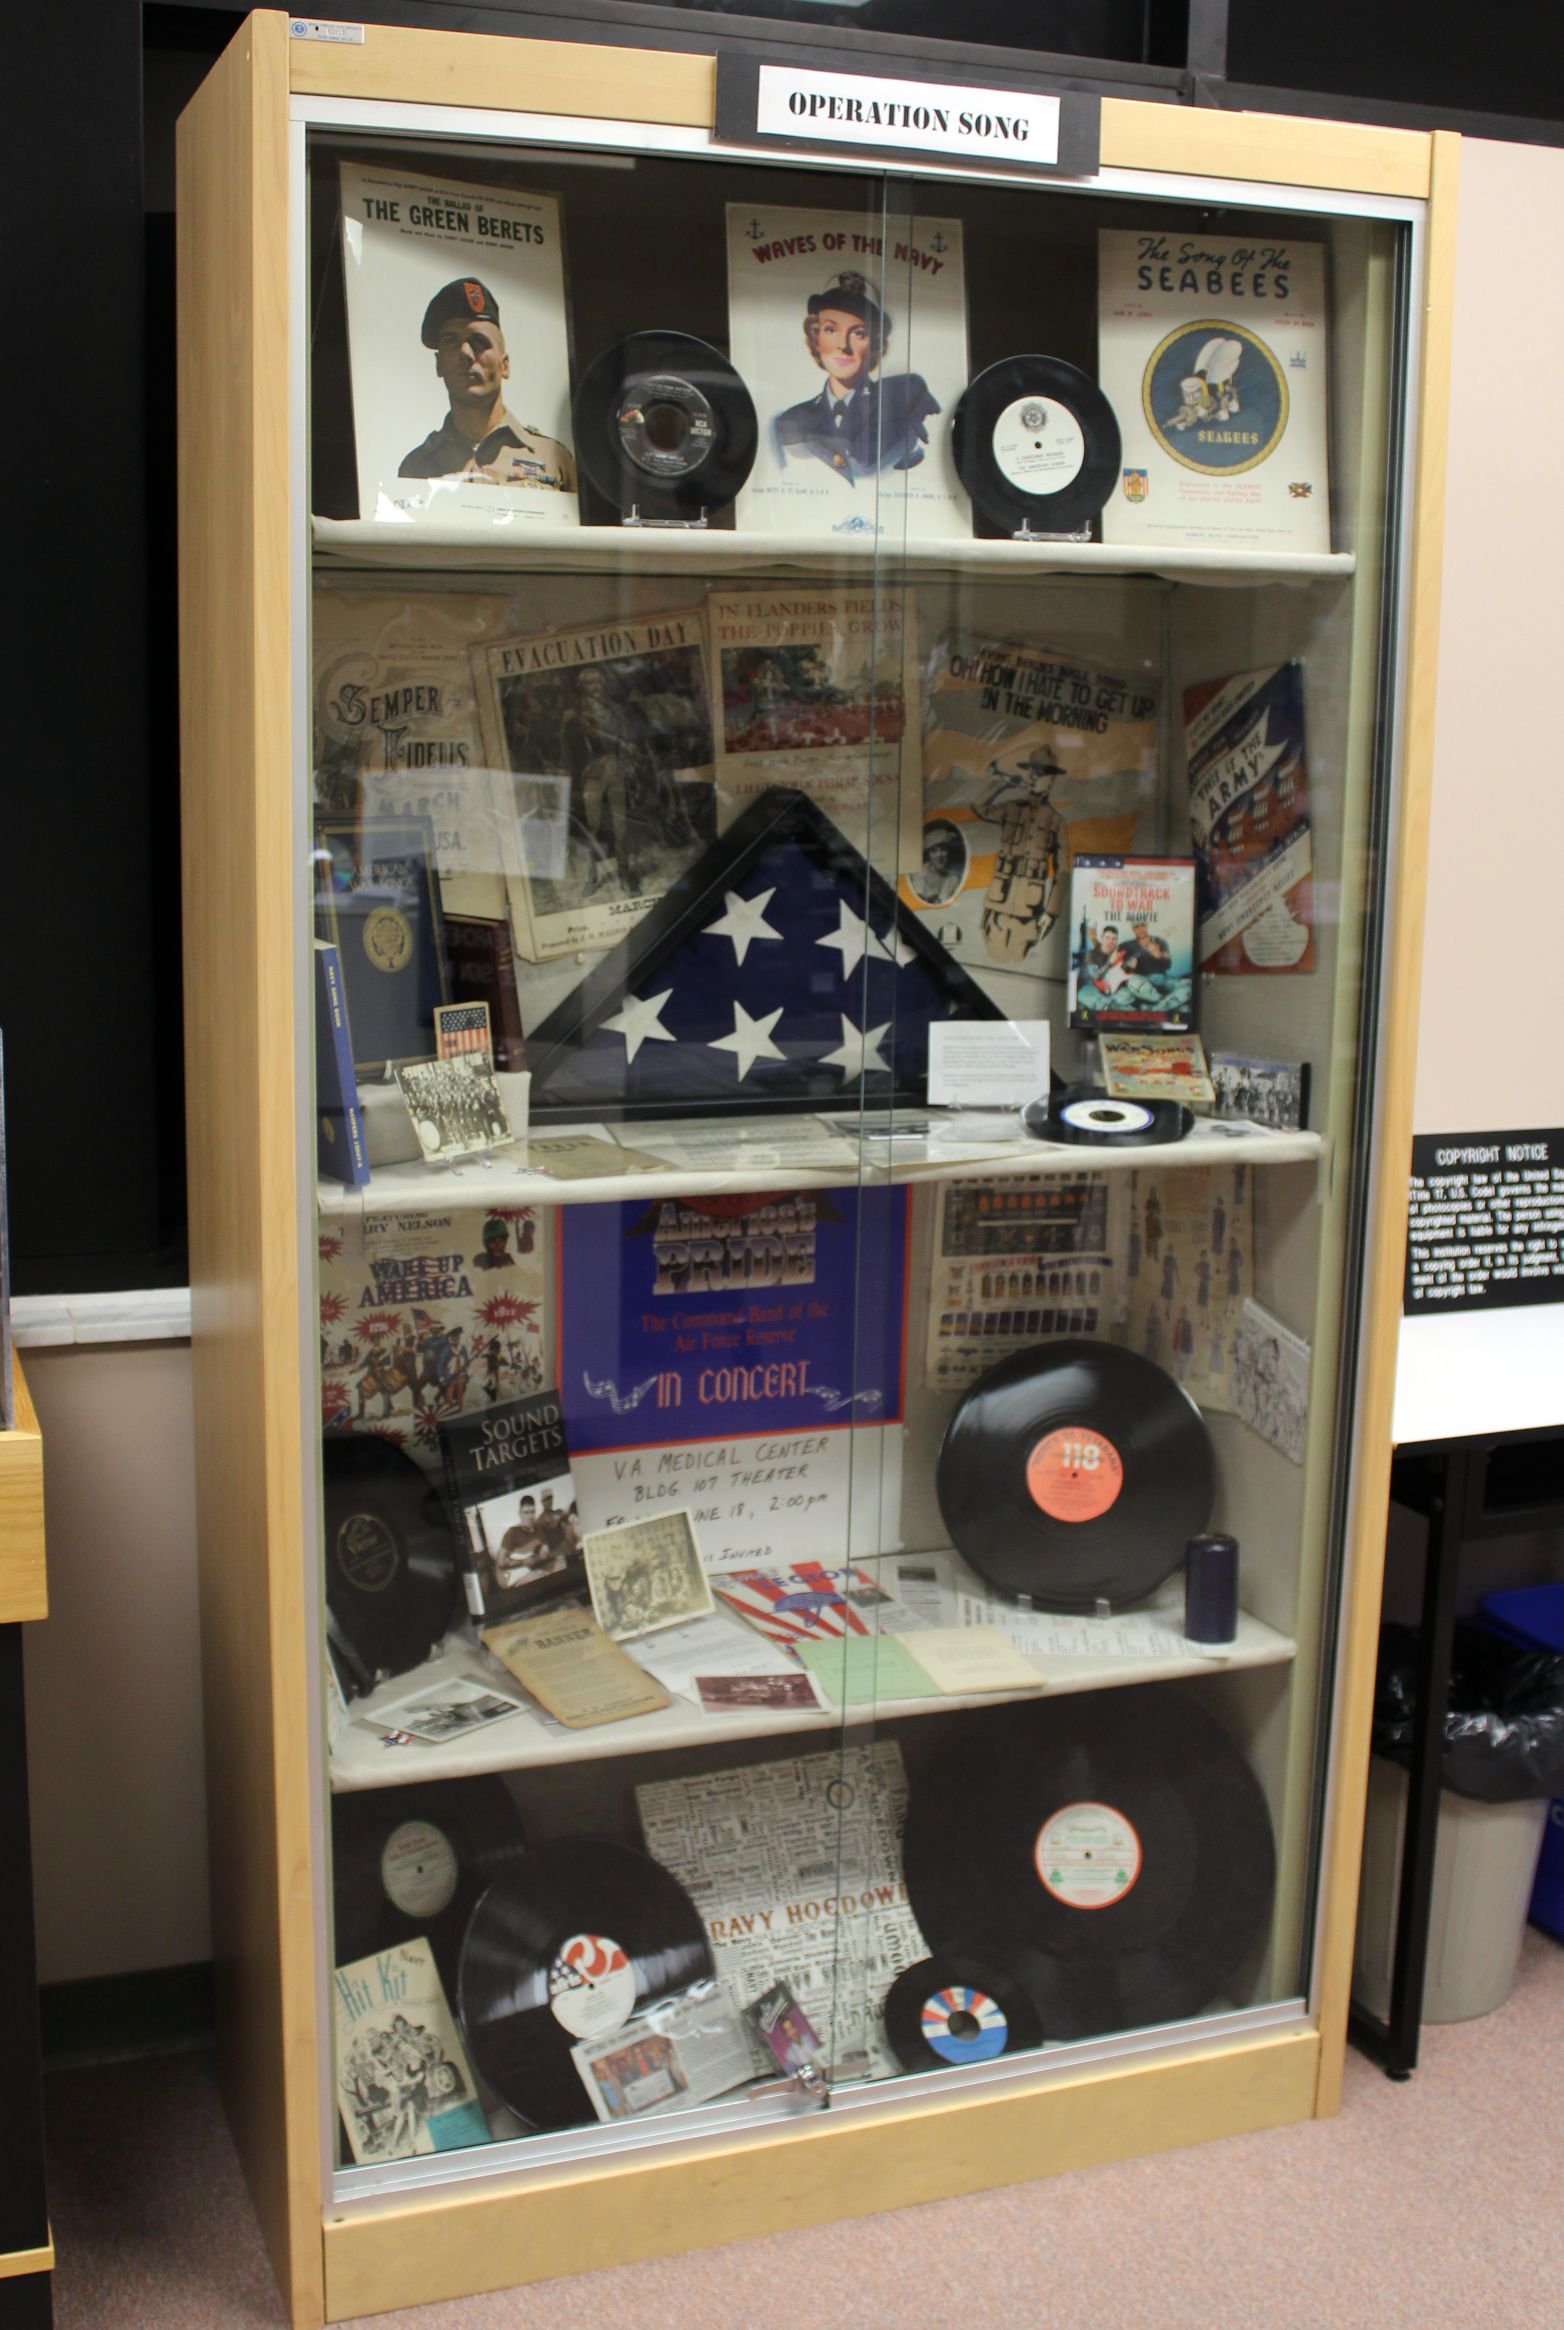 Operation Song Exhibit